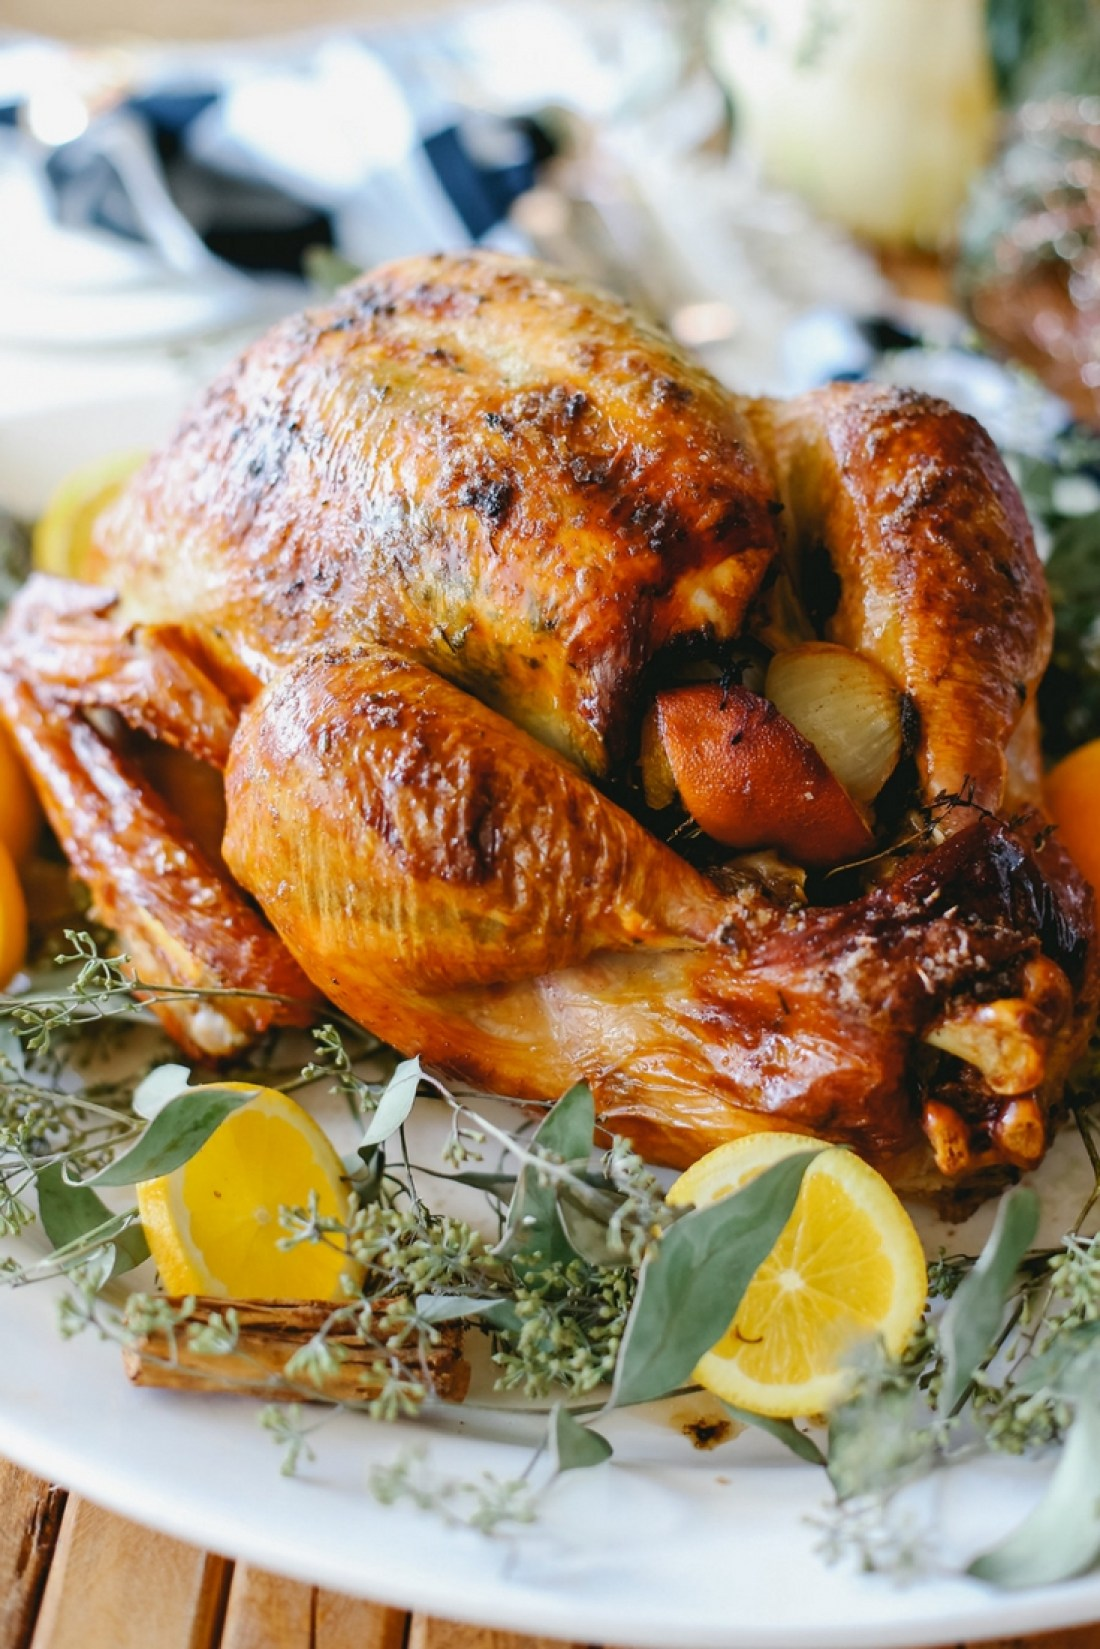 Turkey recipe: thisOrange Spiced Turkey is moist, tender, delicious & the perfect centerpiece for your holiday meal! Easy to make & bursting with flavor.